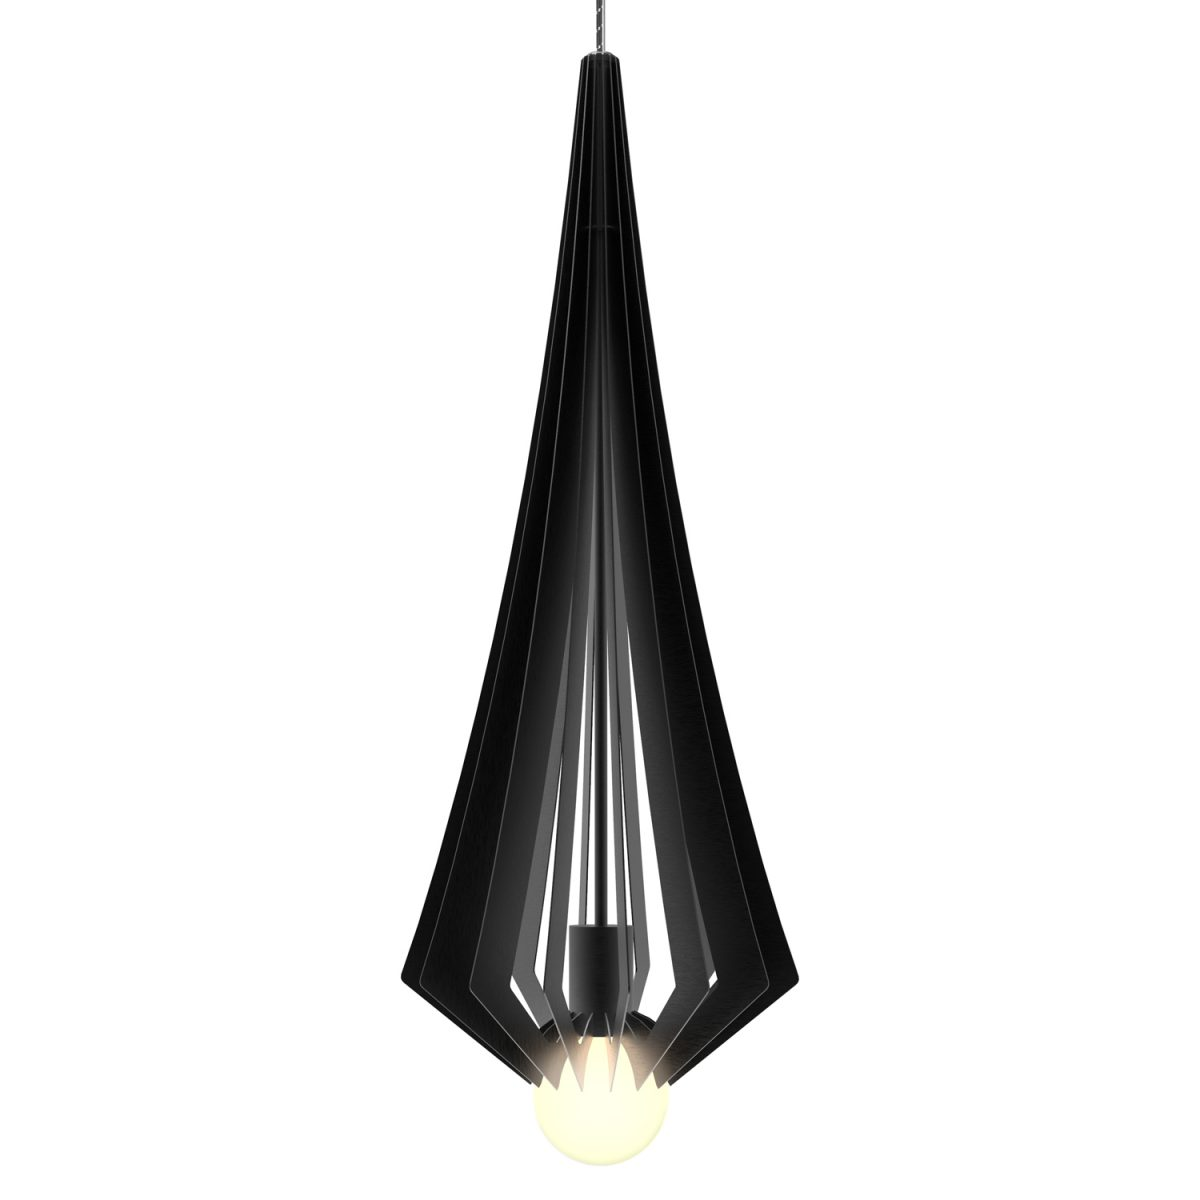 JSPR Beaudine III Black Opaque Project Verlichting Dutch Design